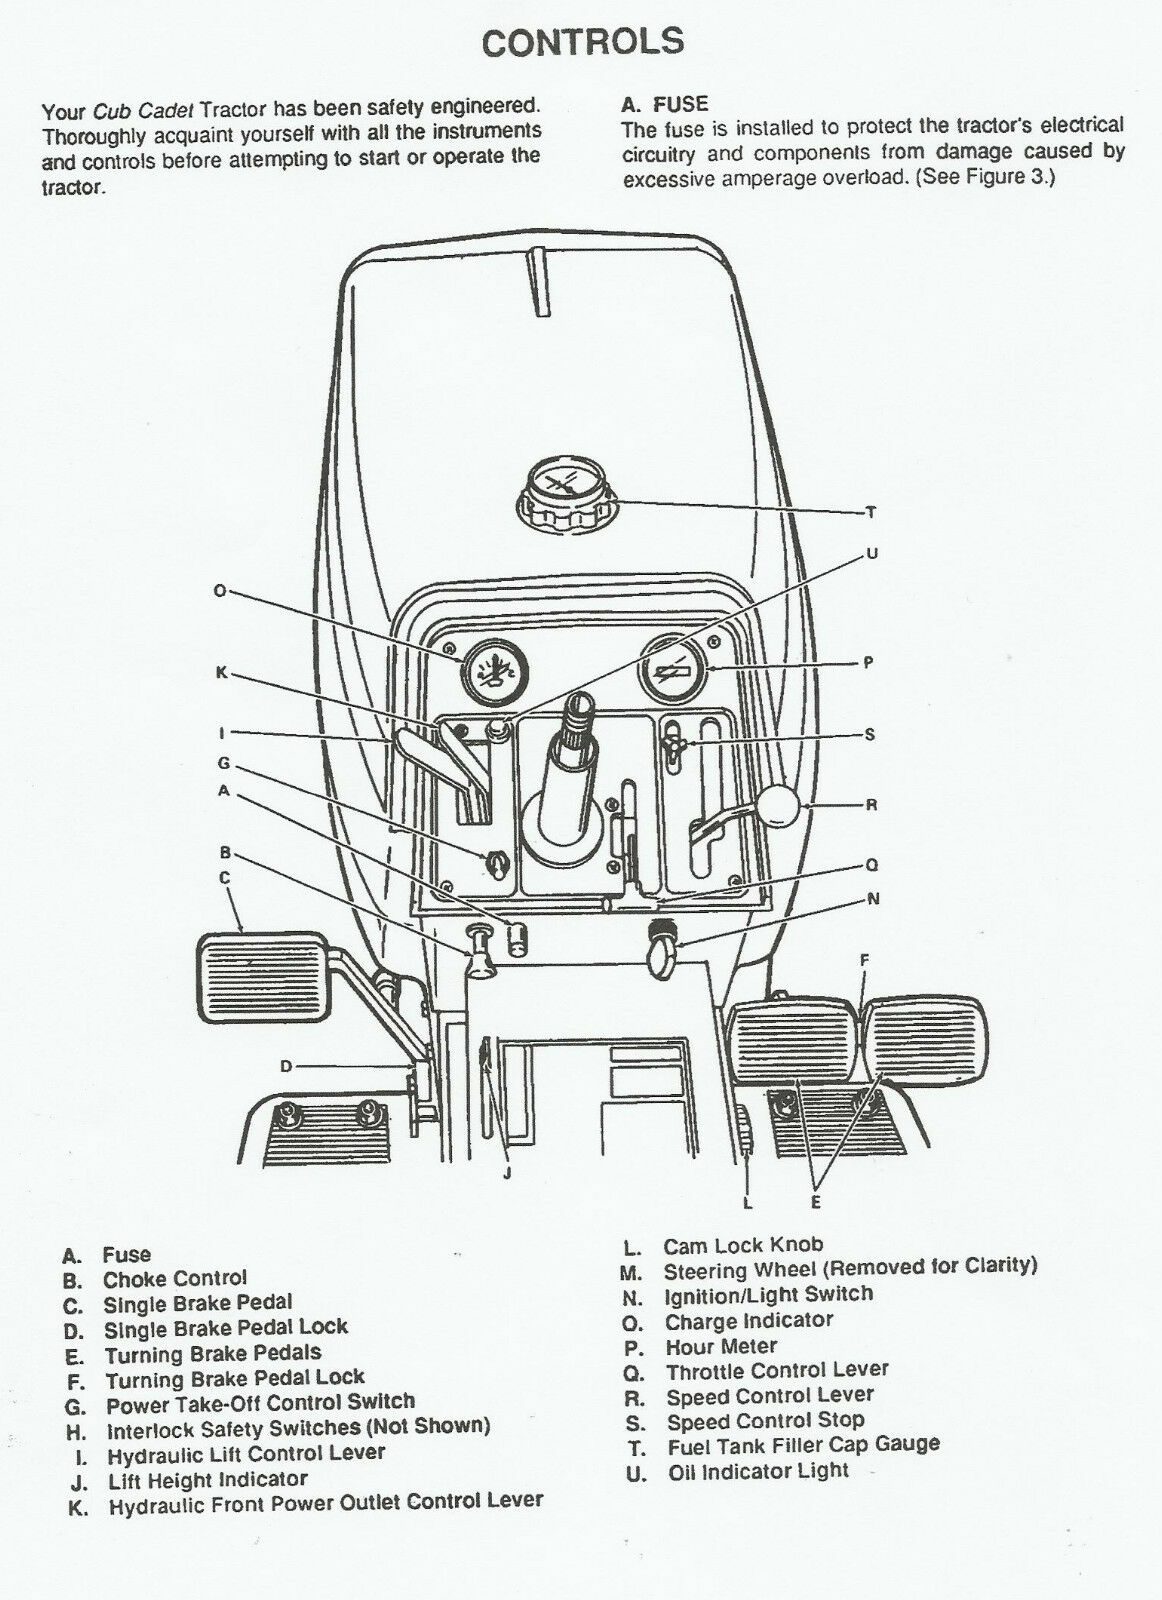 hight resolution of 2072 cub cadet wiring diagram wiring library 2072 cub cadet wiring diagram